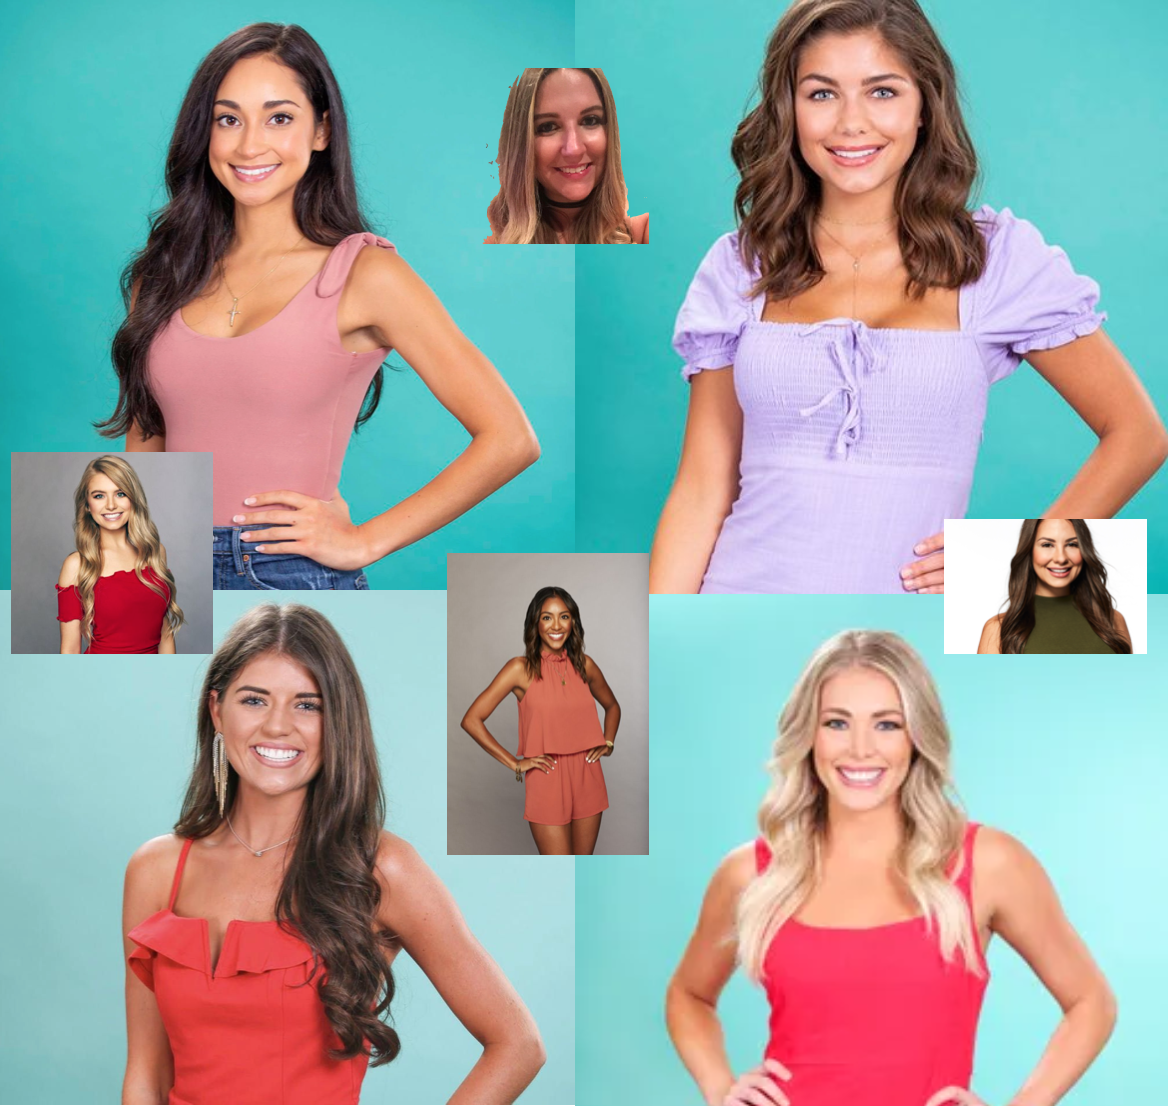 Who The Fuck Is Going To Be The Next Bachelorette?